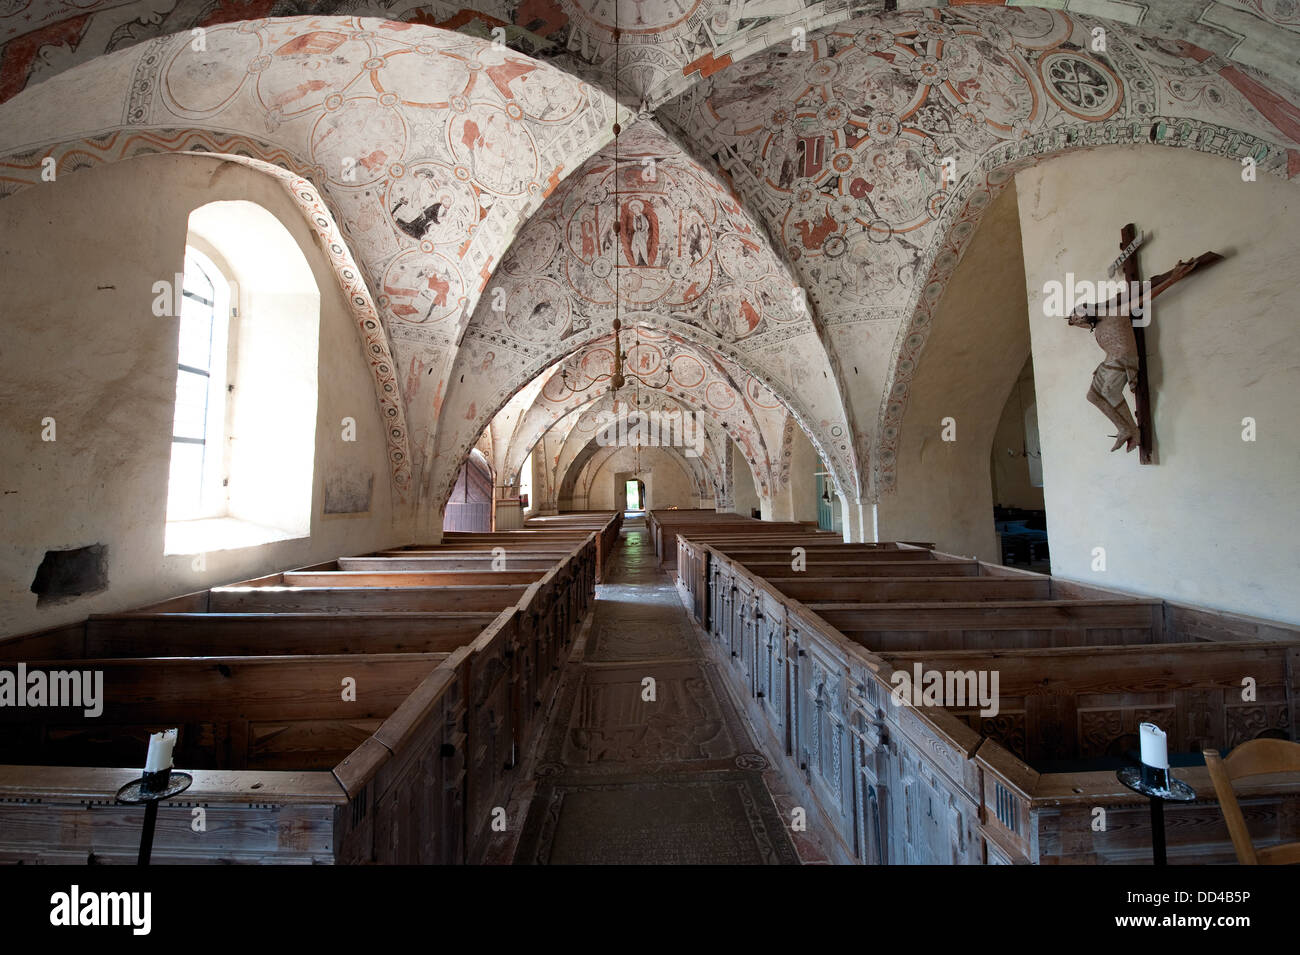 900-year-old church - St Marys church in Risinge, Ostergotland, Sweden - Stock Image